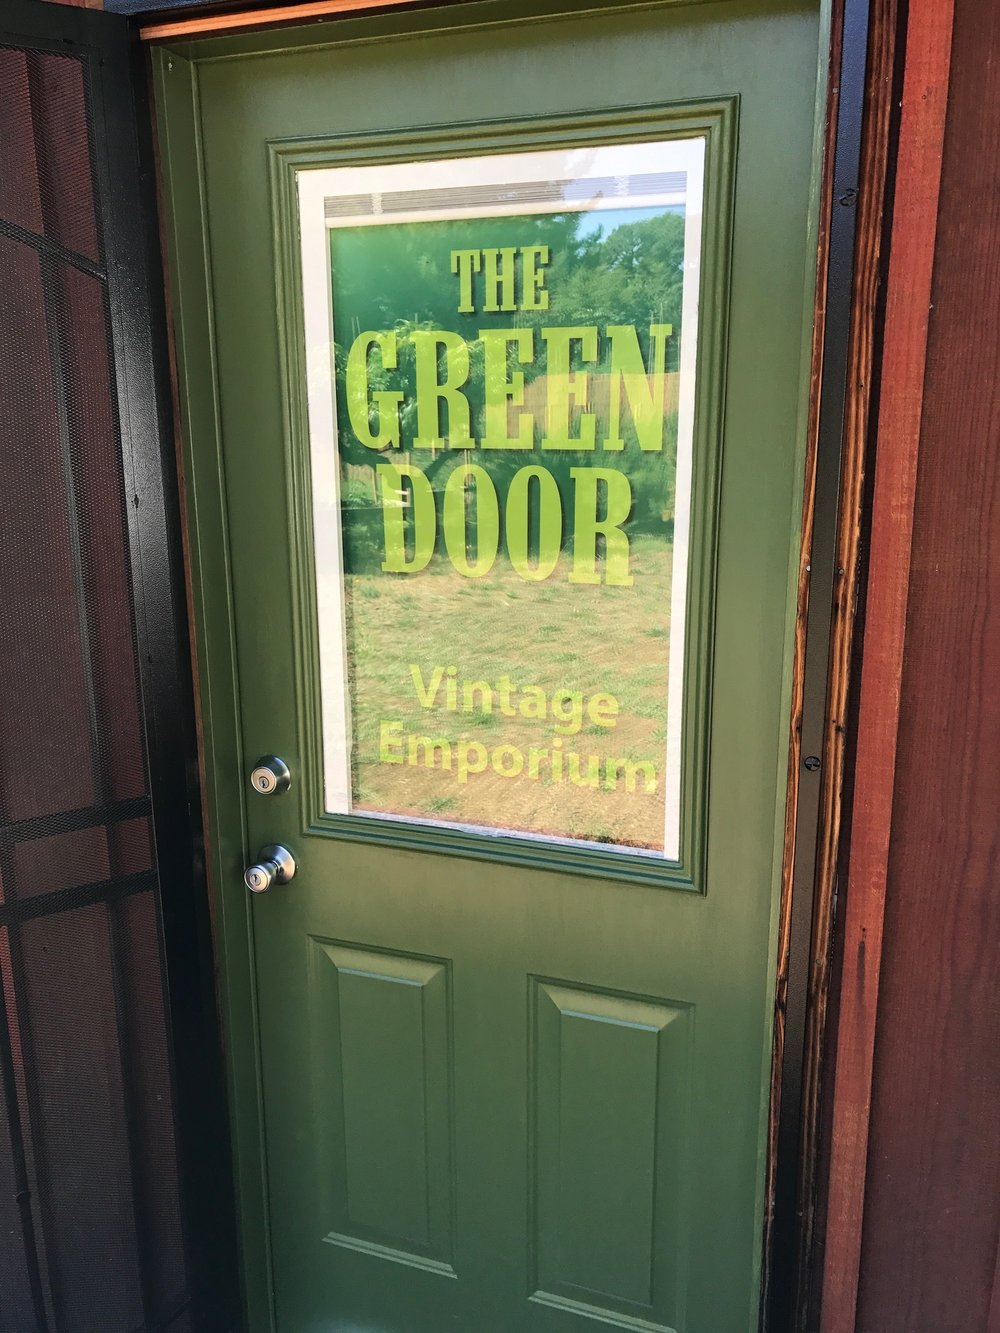 The Green Door Vintage Emporium